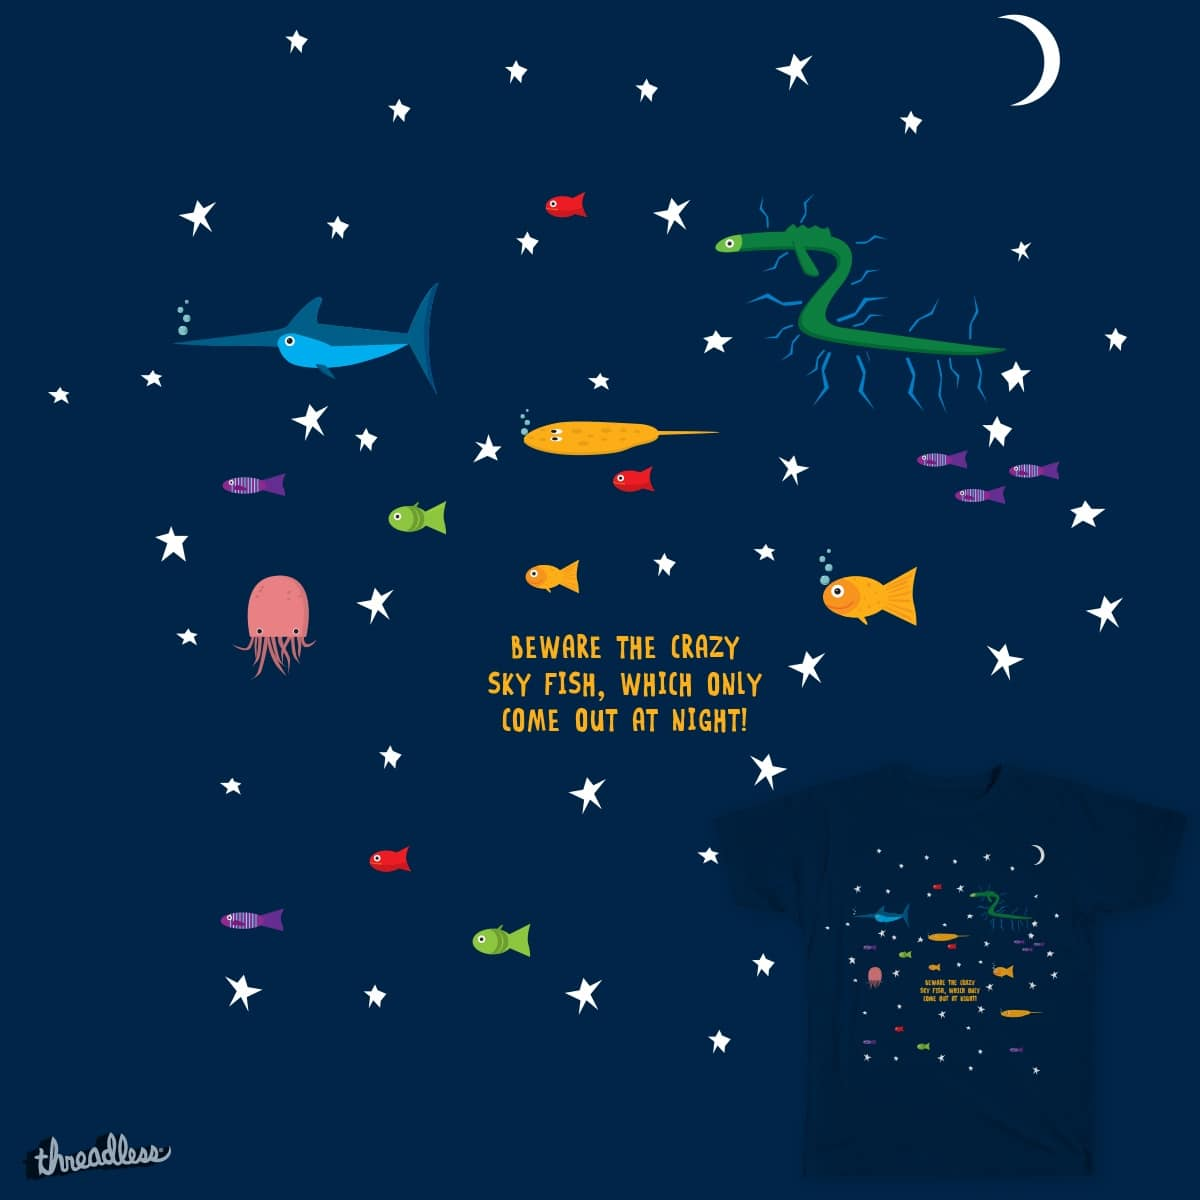 BEWARE THE CRAZY SKY FISH, WHICH ONLY COME OUT AT NIGHT! by MylesArt on Threadless